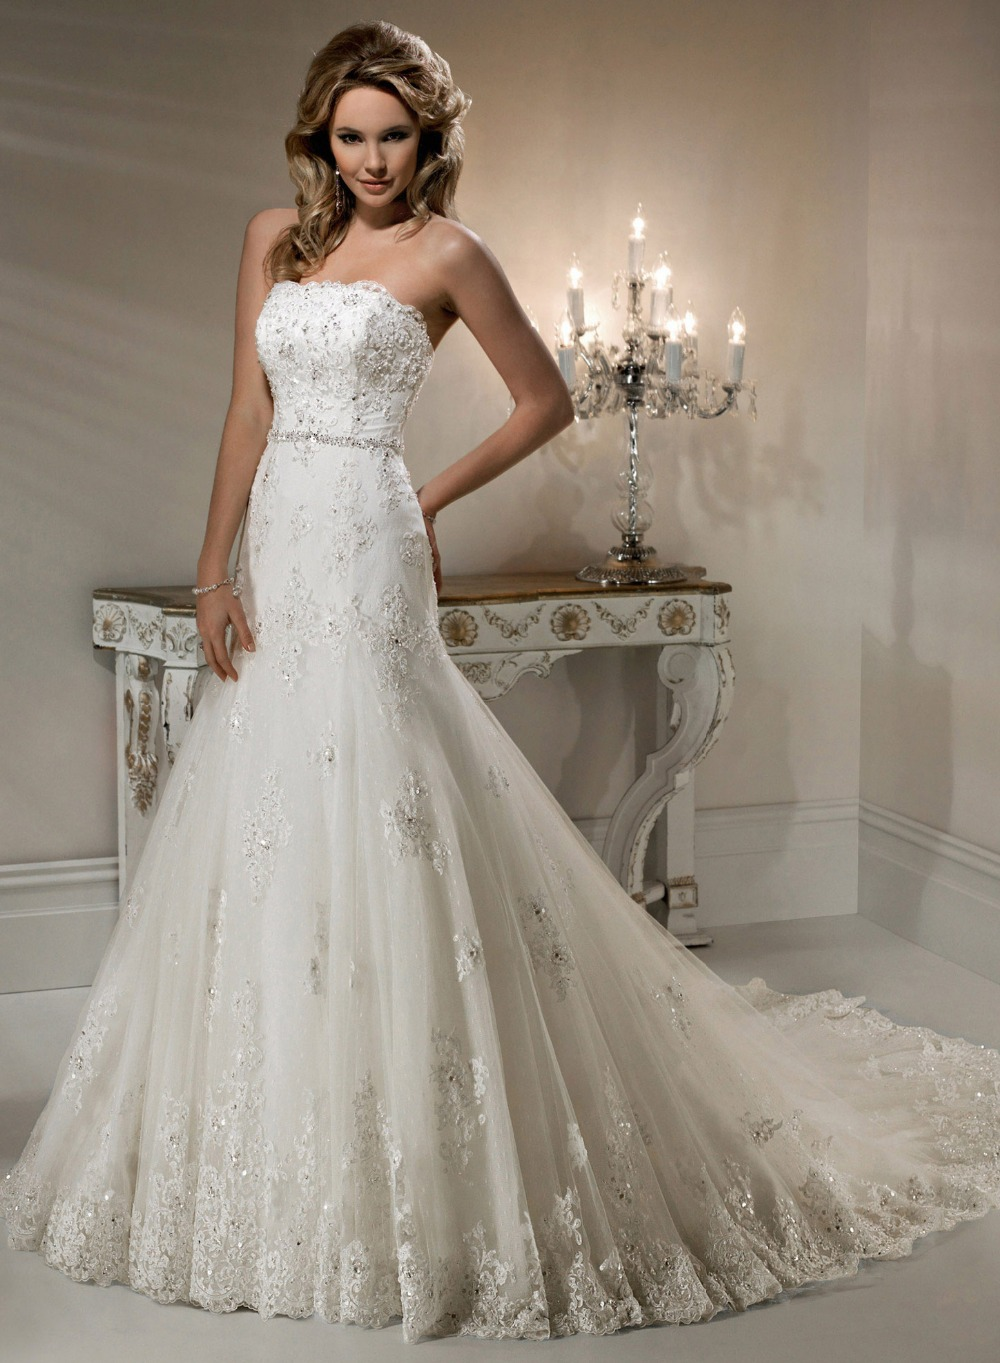 wedding dresses yw010 hot sale new elegant mermaid bridal